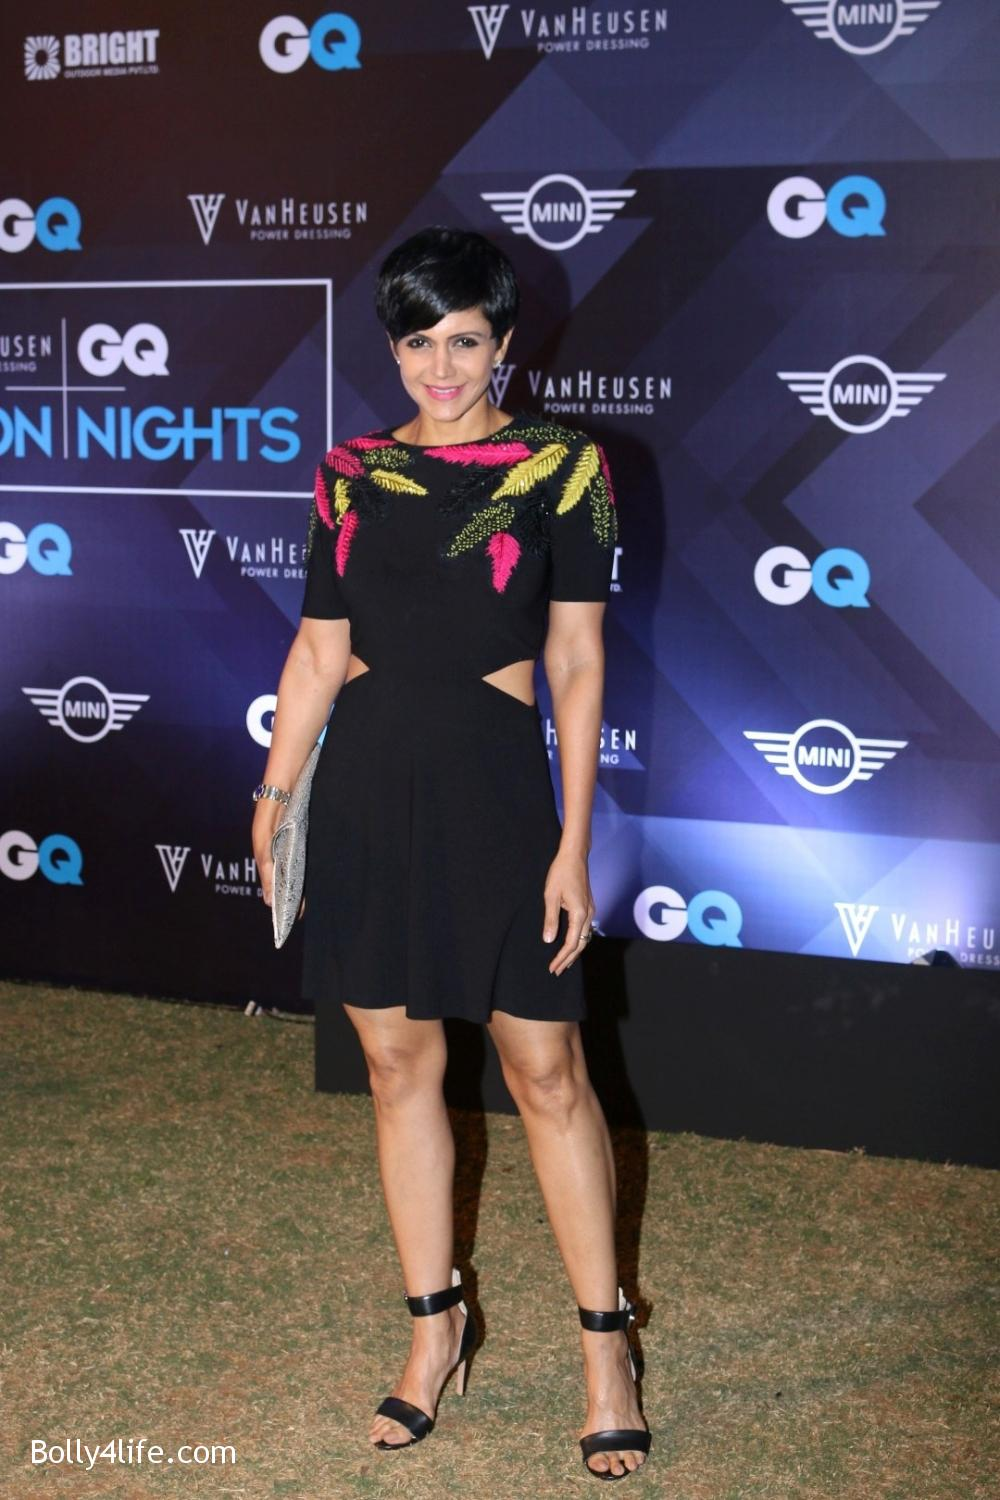 Mandira-Bedi-during-the-Van-Heusen-GQ-Fashion-Nights-in-Mumbai-2.jpg